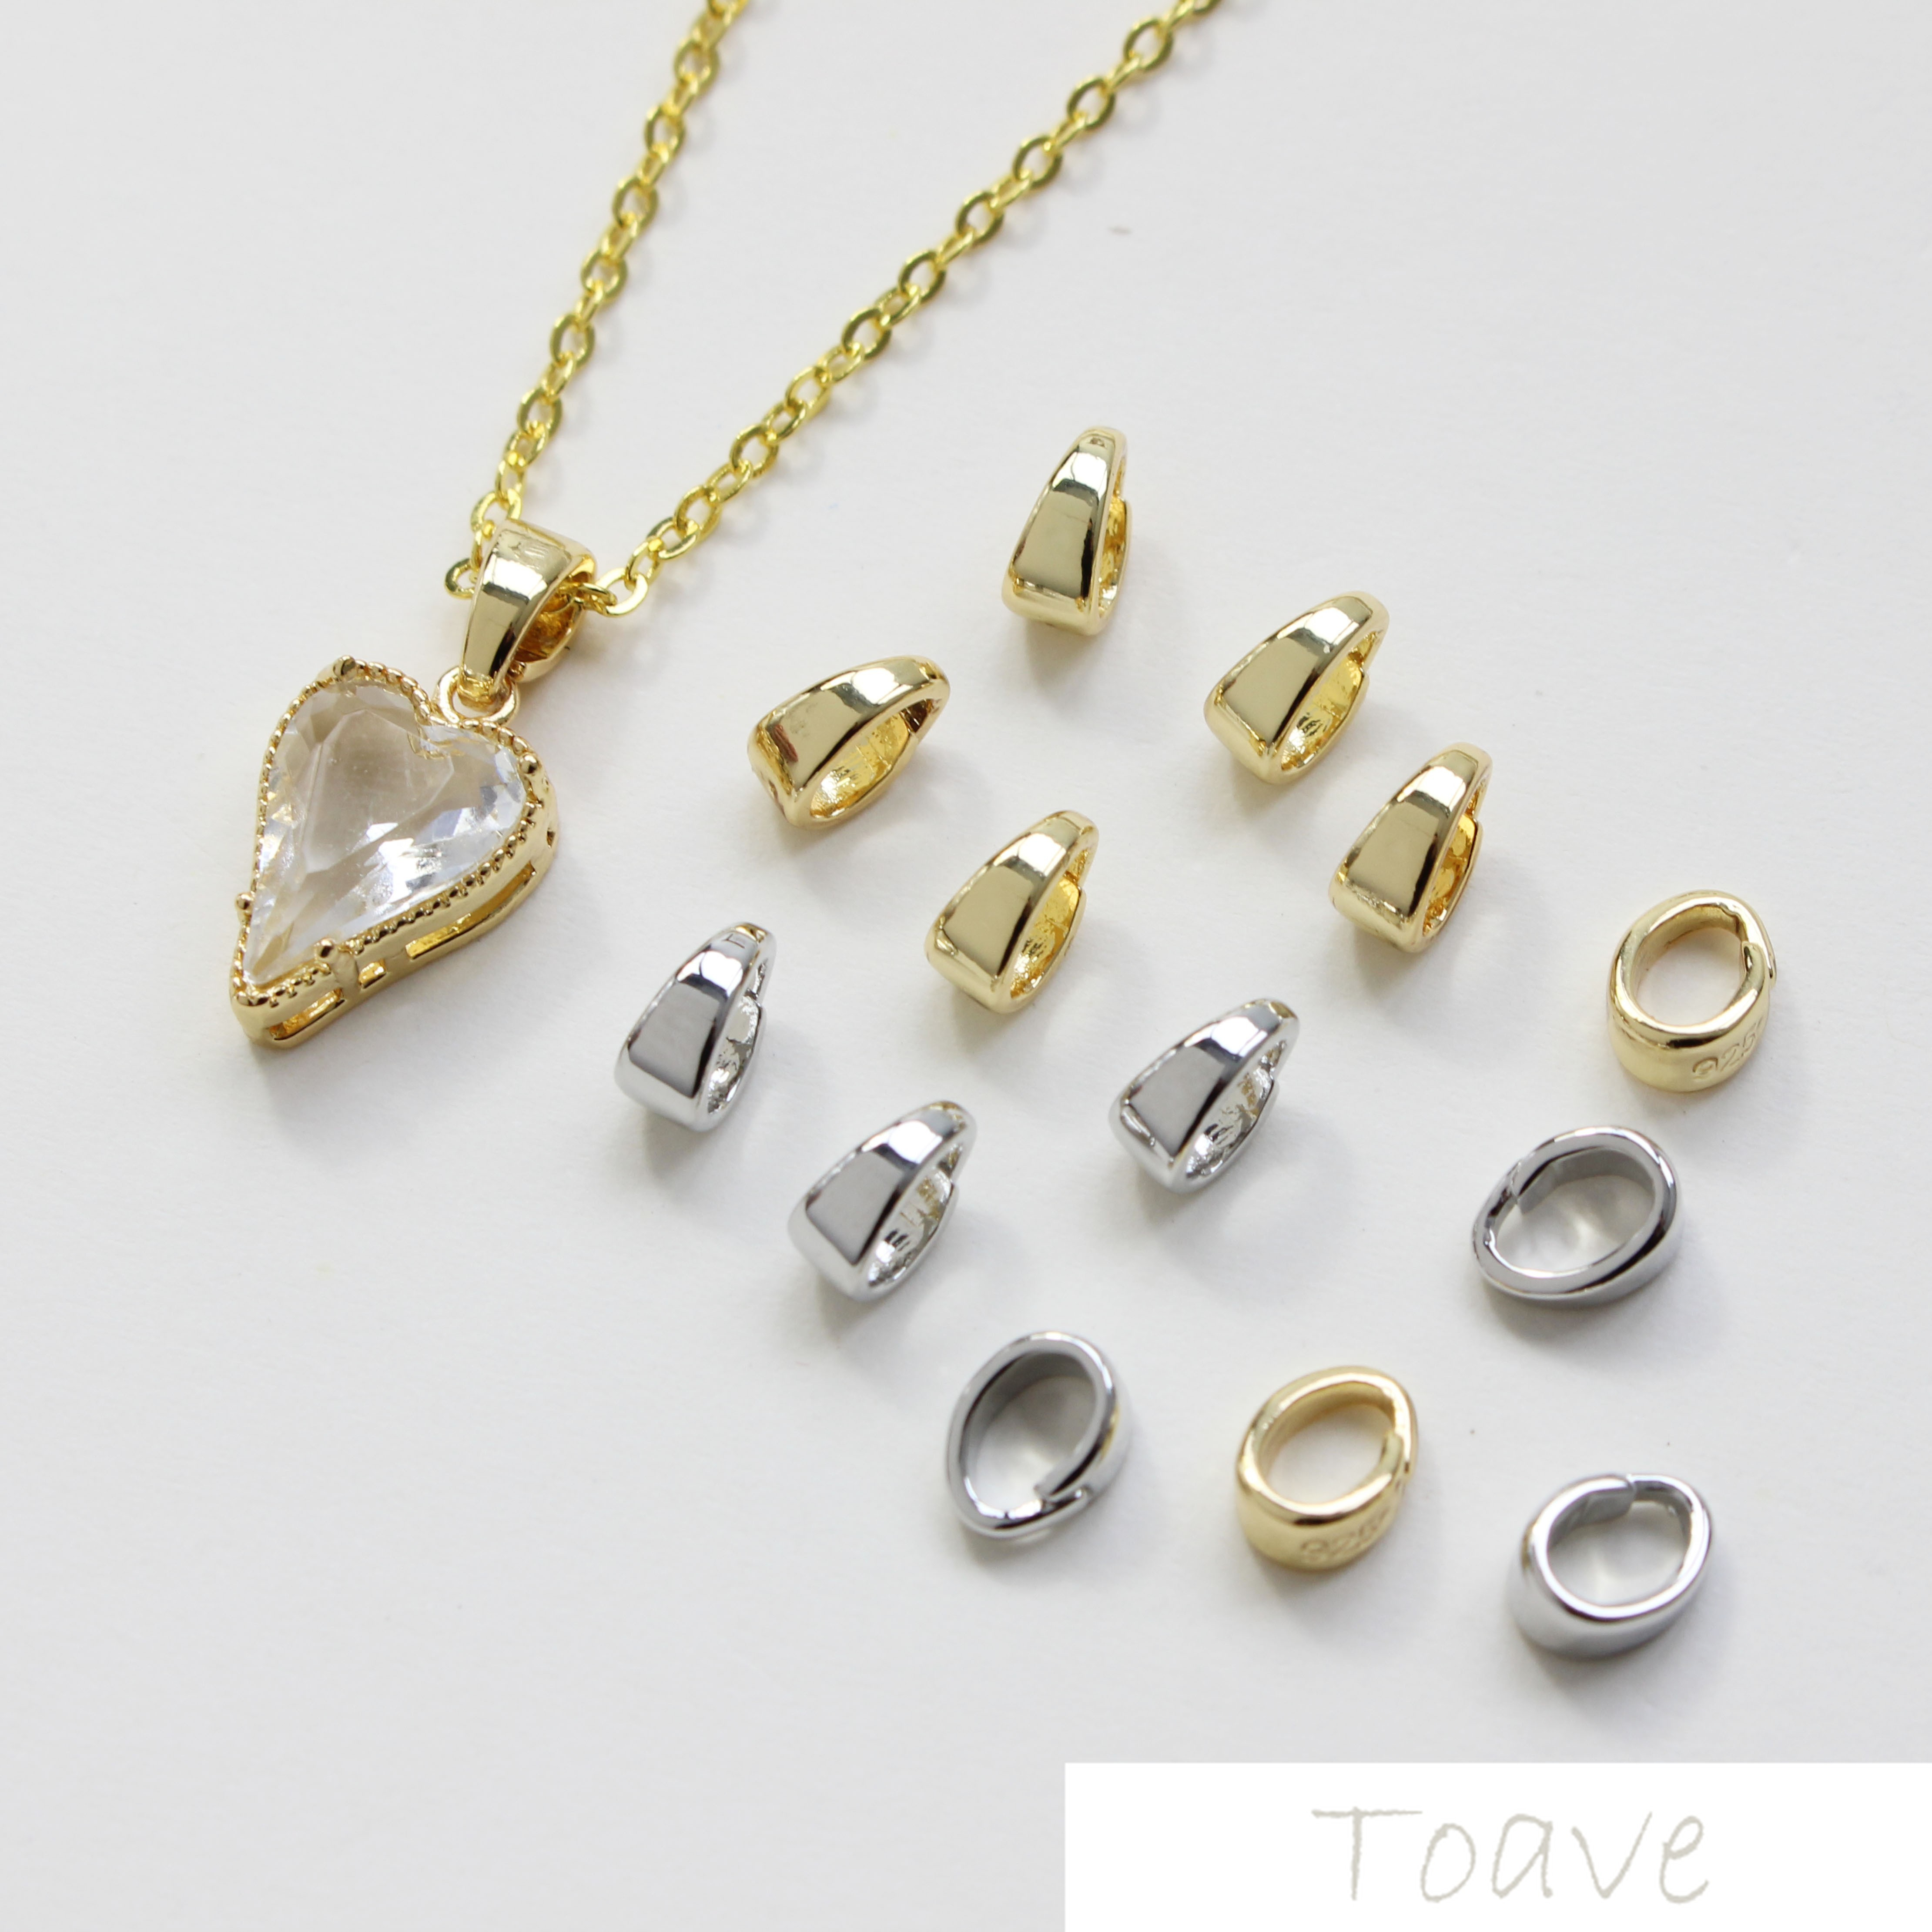 Small Delicacy Copper Plated 18K Real Gold Color Oval Buckle Necklace Bracelets Base Accessories